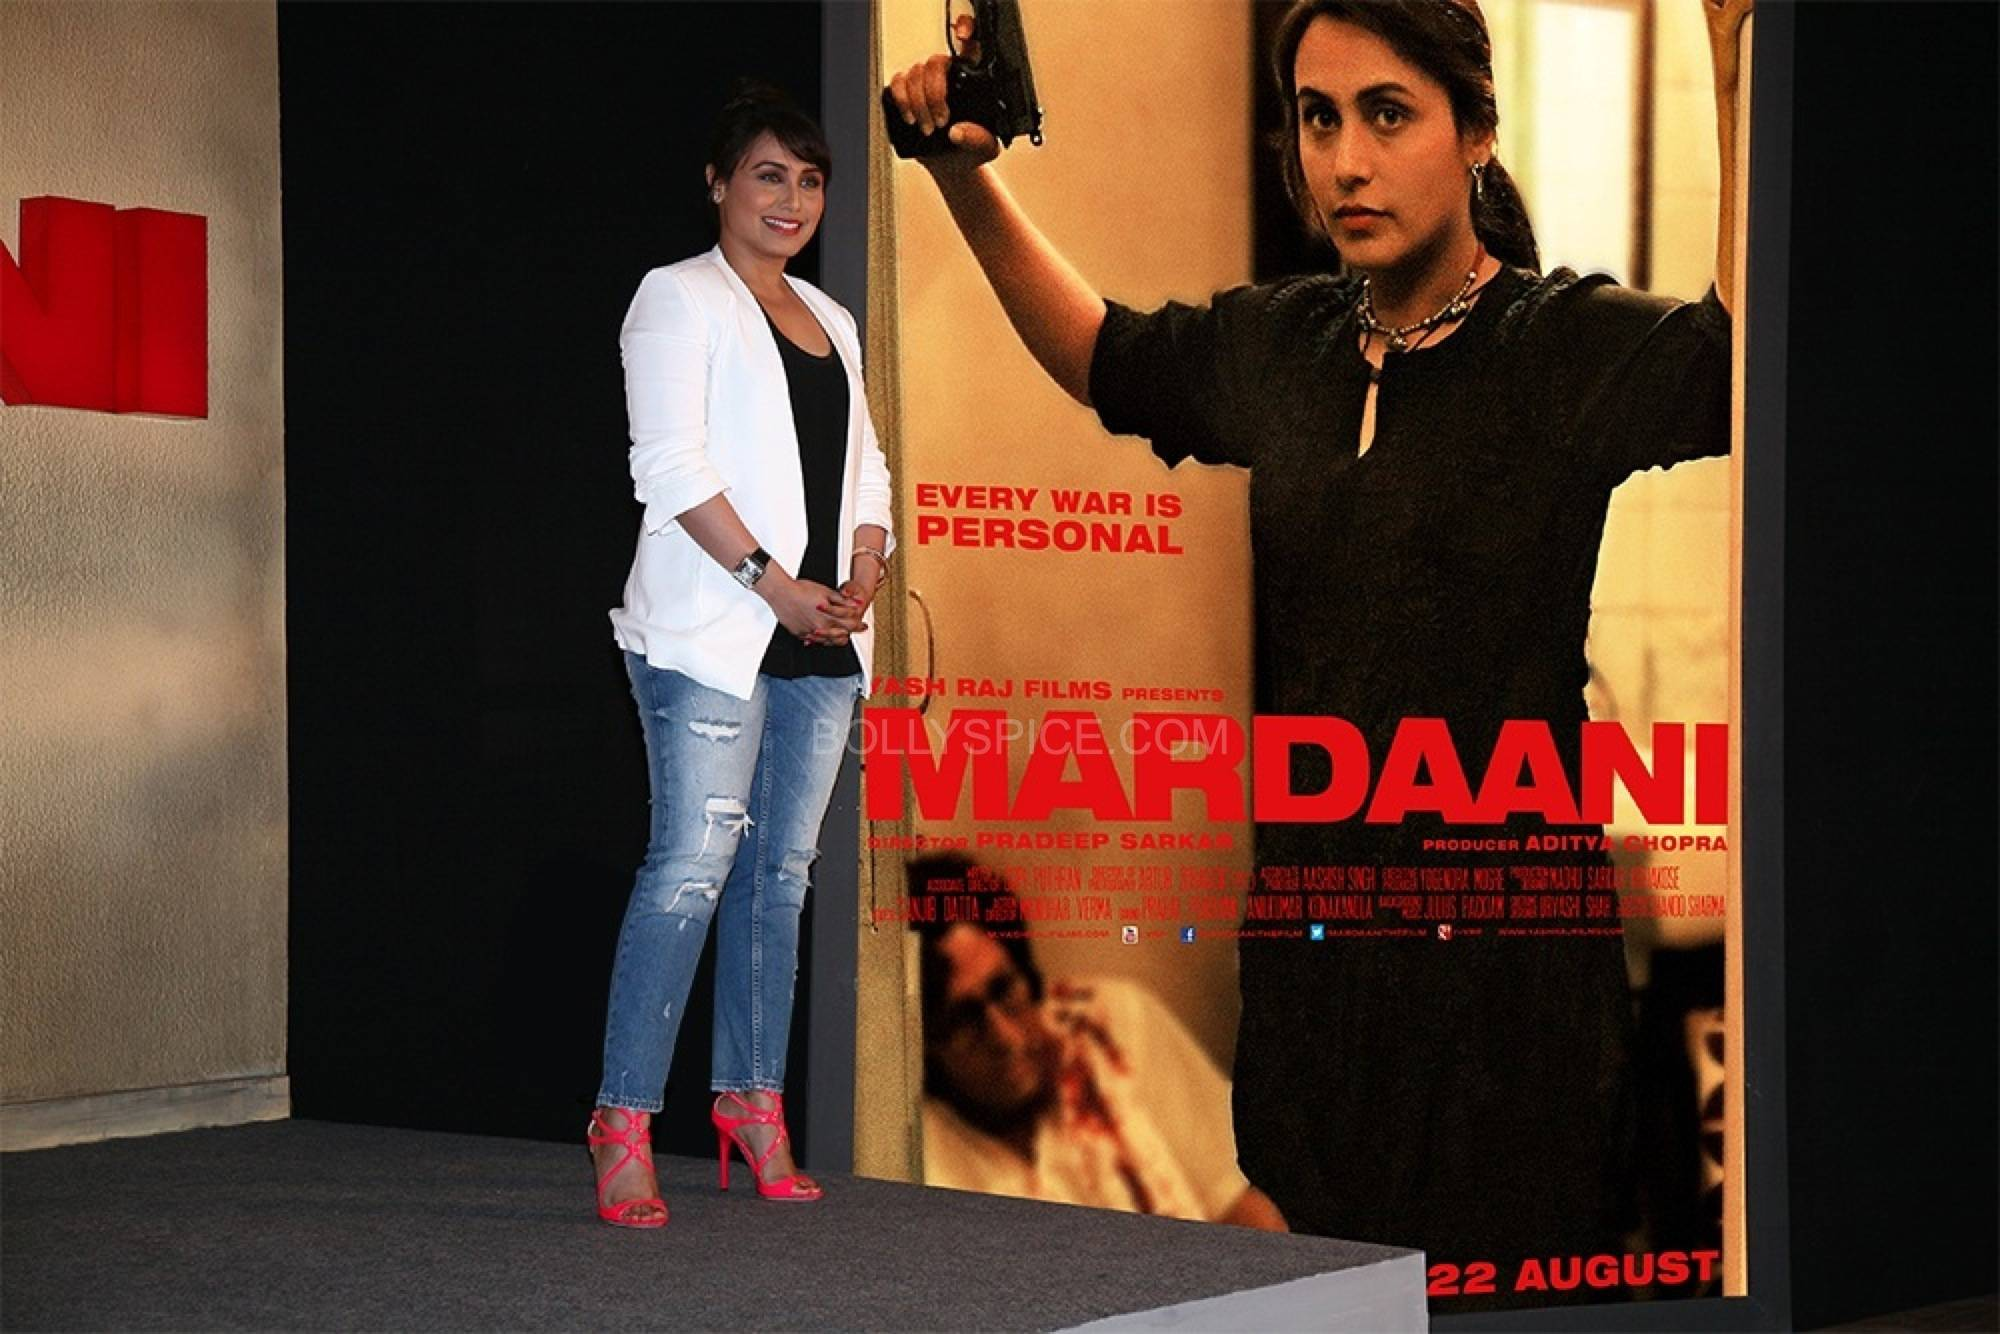 mardaanitrailer2 See Rani Mukerji in the gripping Mardaani Trailer!